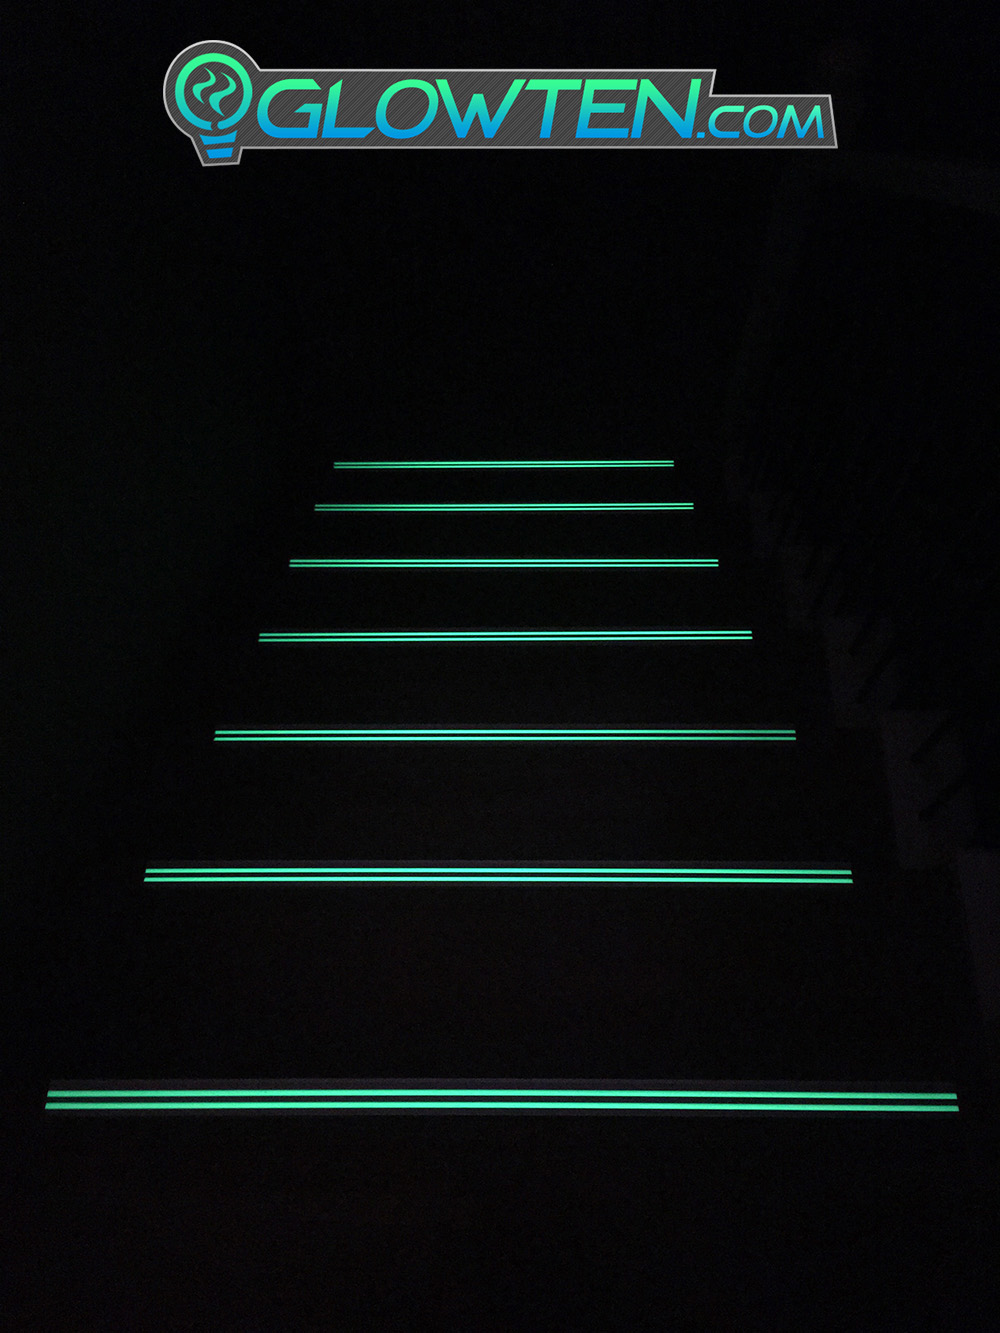 GLOWTEN.com - ANTI-SLIP STAIRS TREAD 2-BANDS GLOW IN THE DARK LUMINOUS SAFETY STRIP GRIP STRENGTH NOSING SEE BETTER AT NIGHT PREVENT FALLING  FOR MINIMUM 31.5